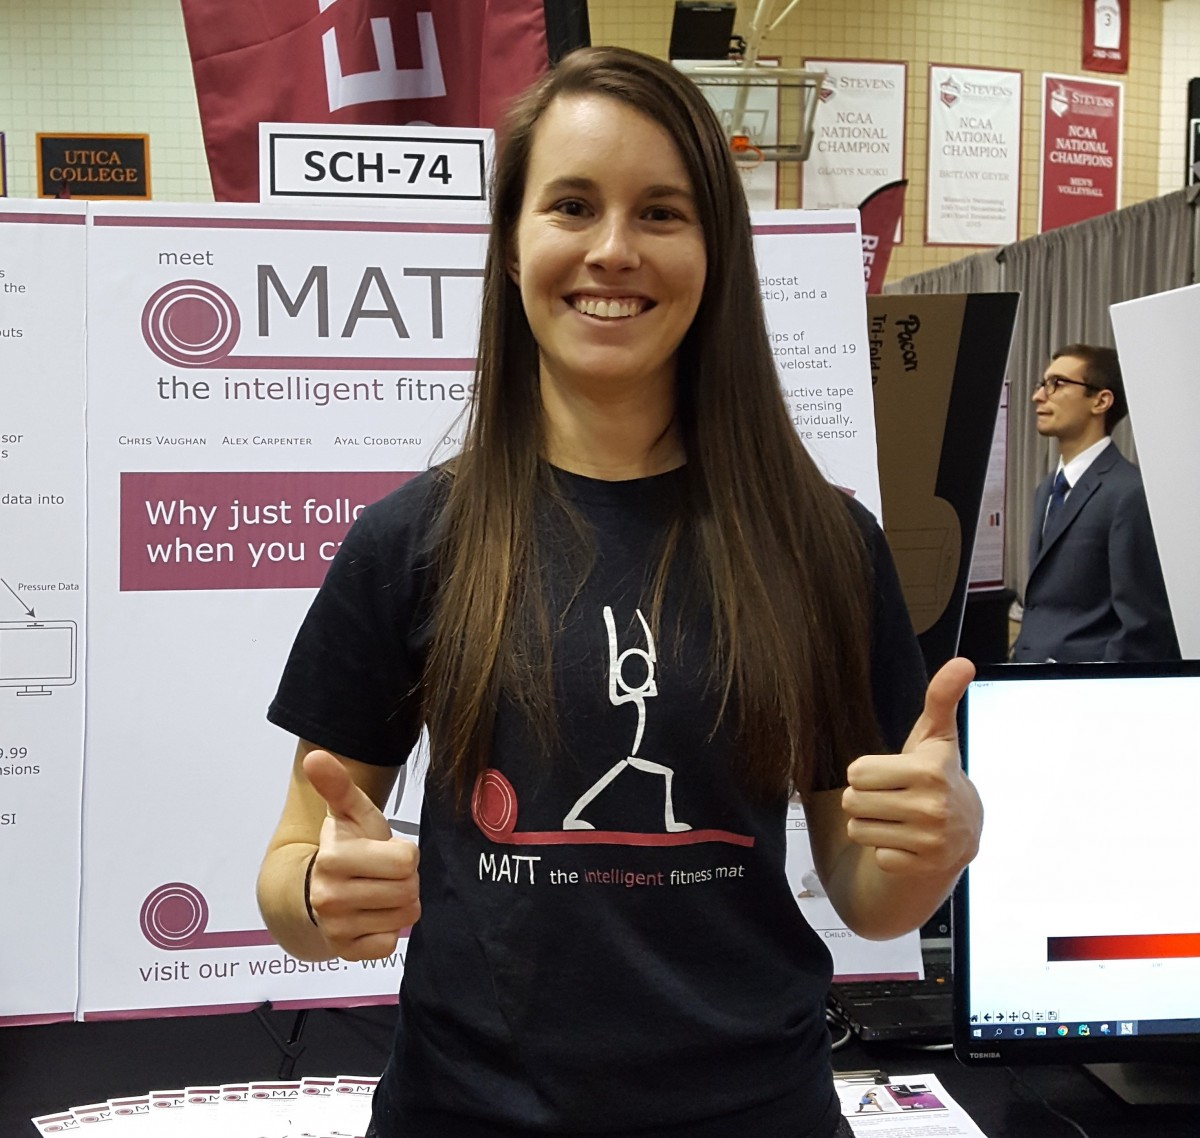 Sara Vitkus, 2017 Class Valedictorian, giving a thumbs-up at Stevens Annual Innovation Expo